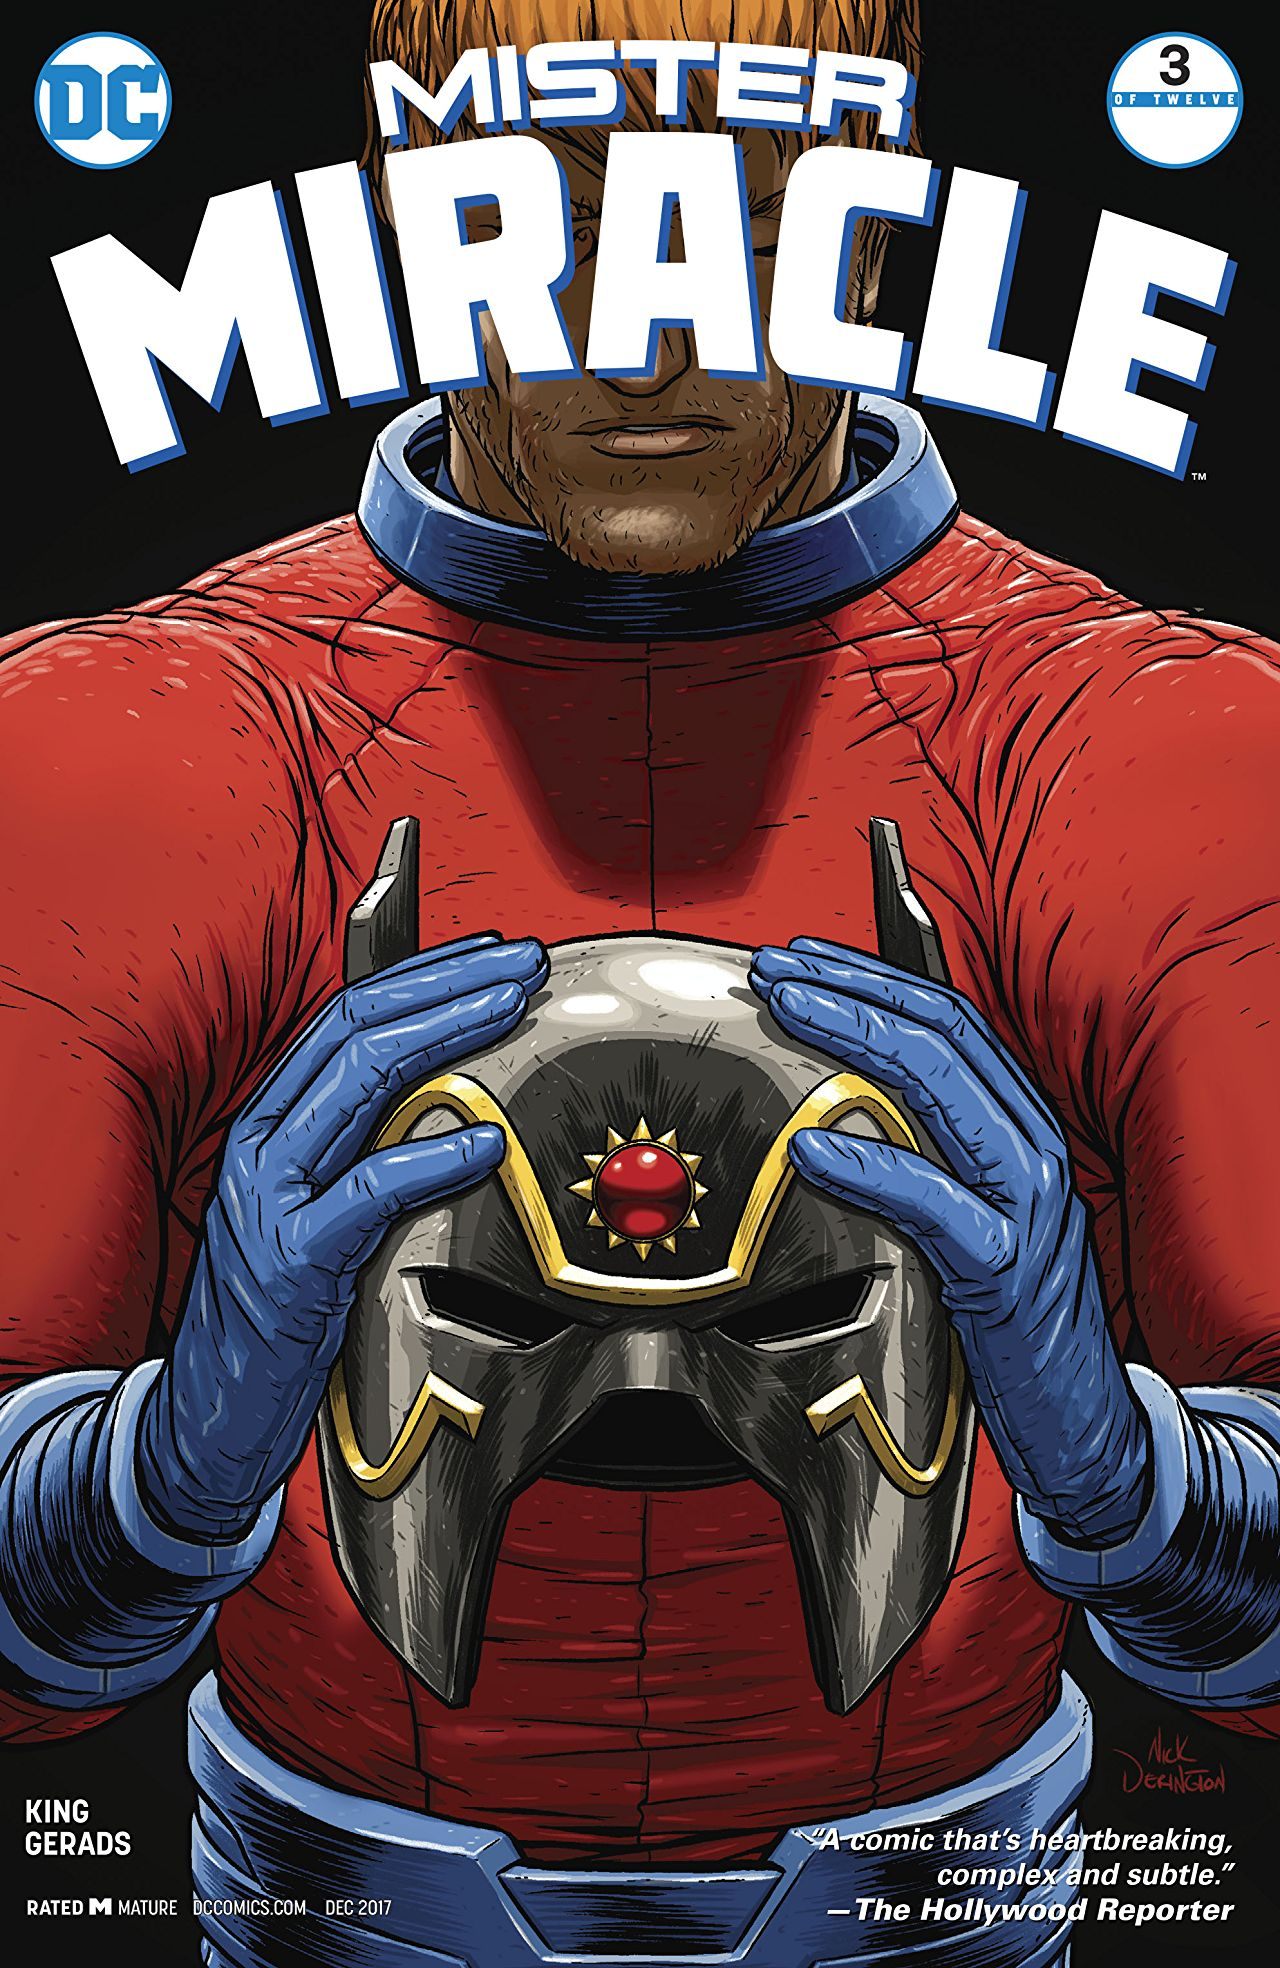 Mister Miracle #3 review: Things get even more disturbing